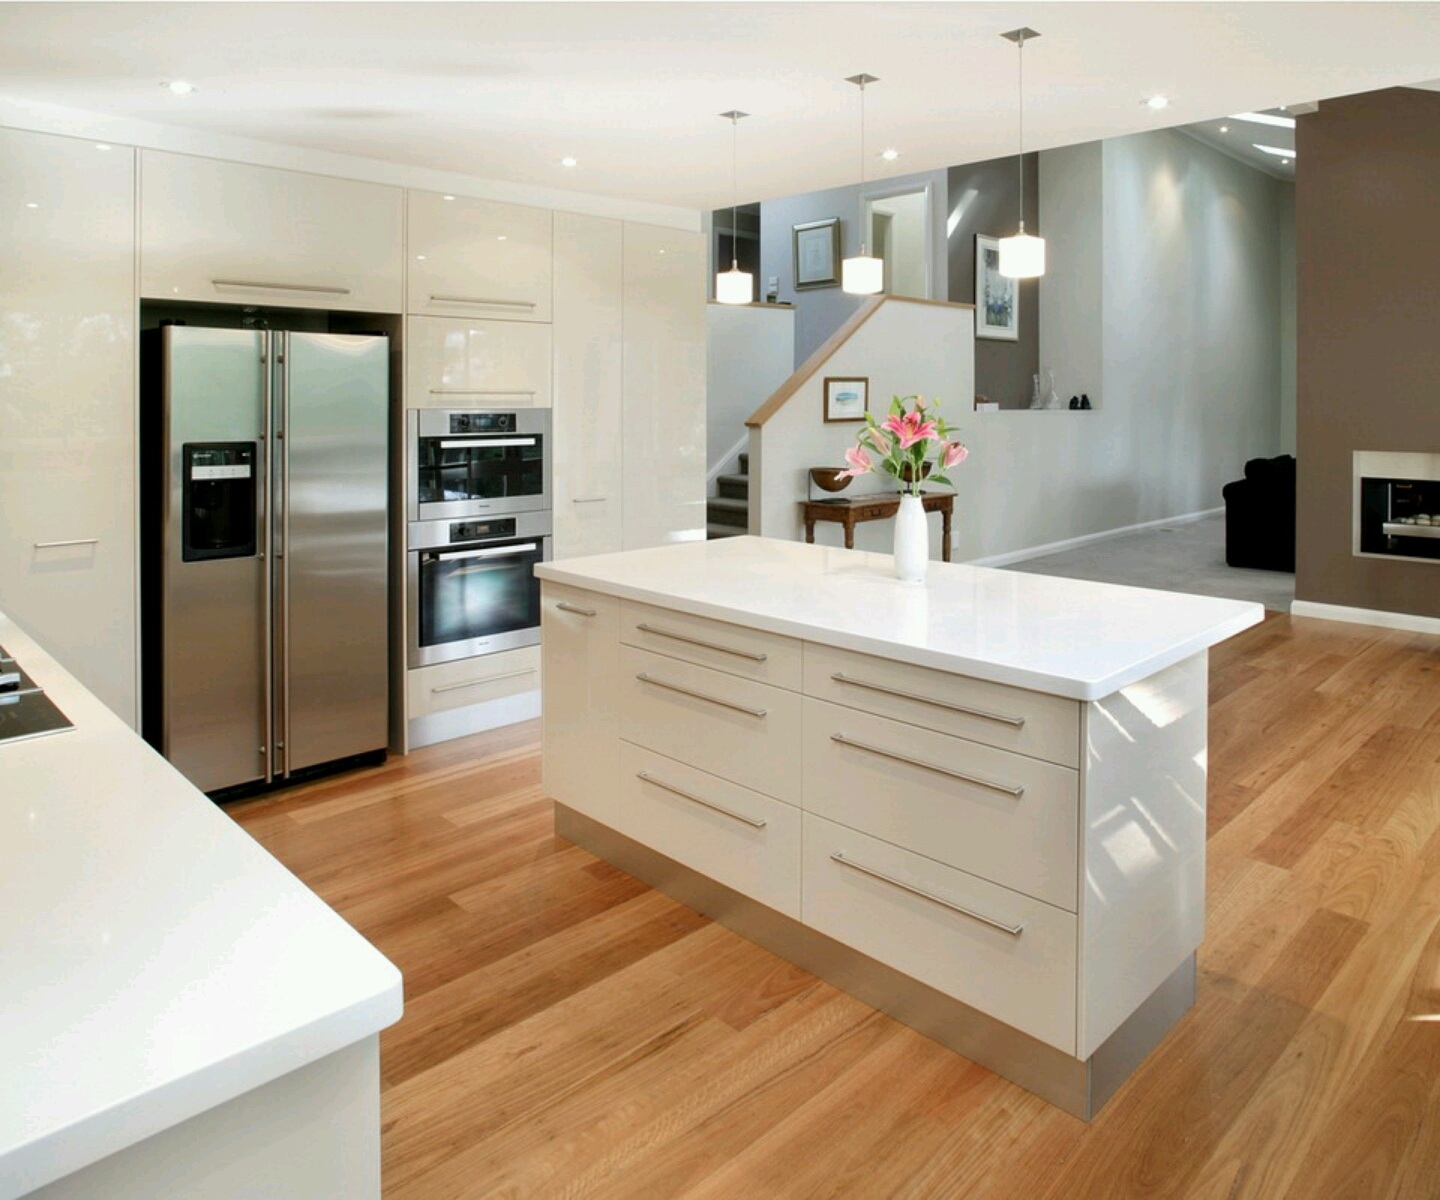 Luxury kitchen modern kitchen cabinets designs furniture gallery - Images of modern kitchen designs ...